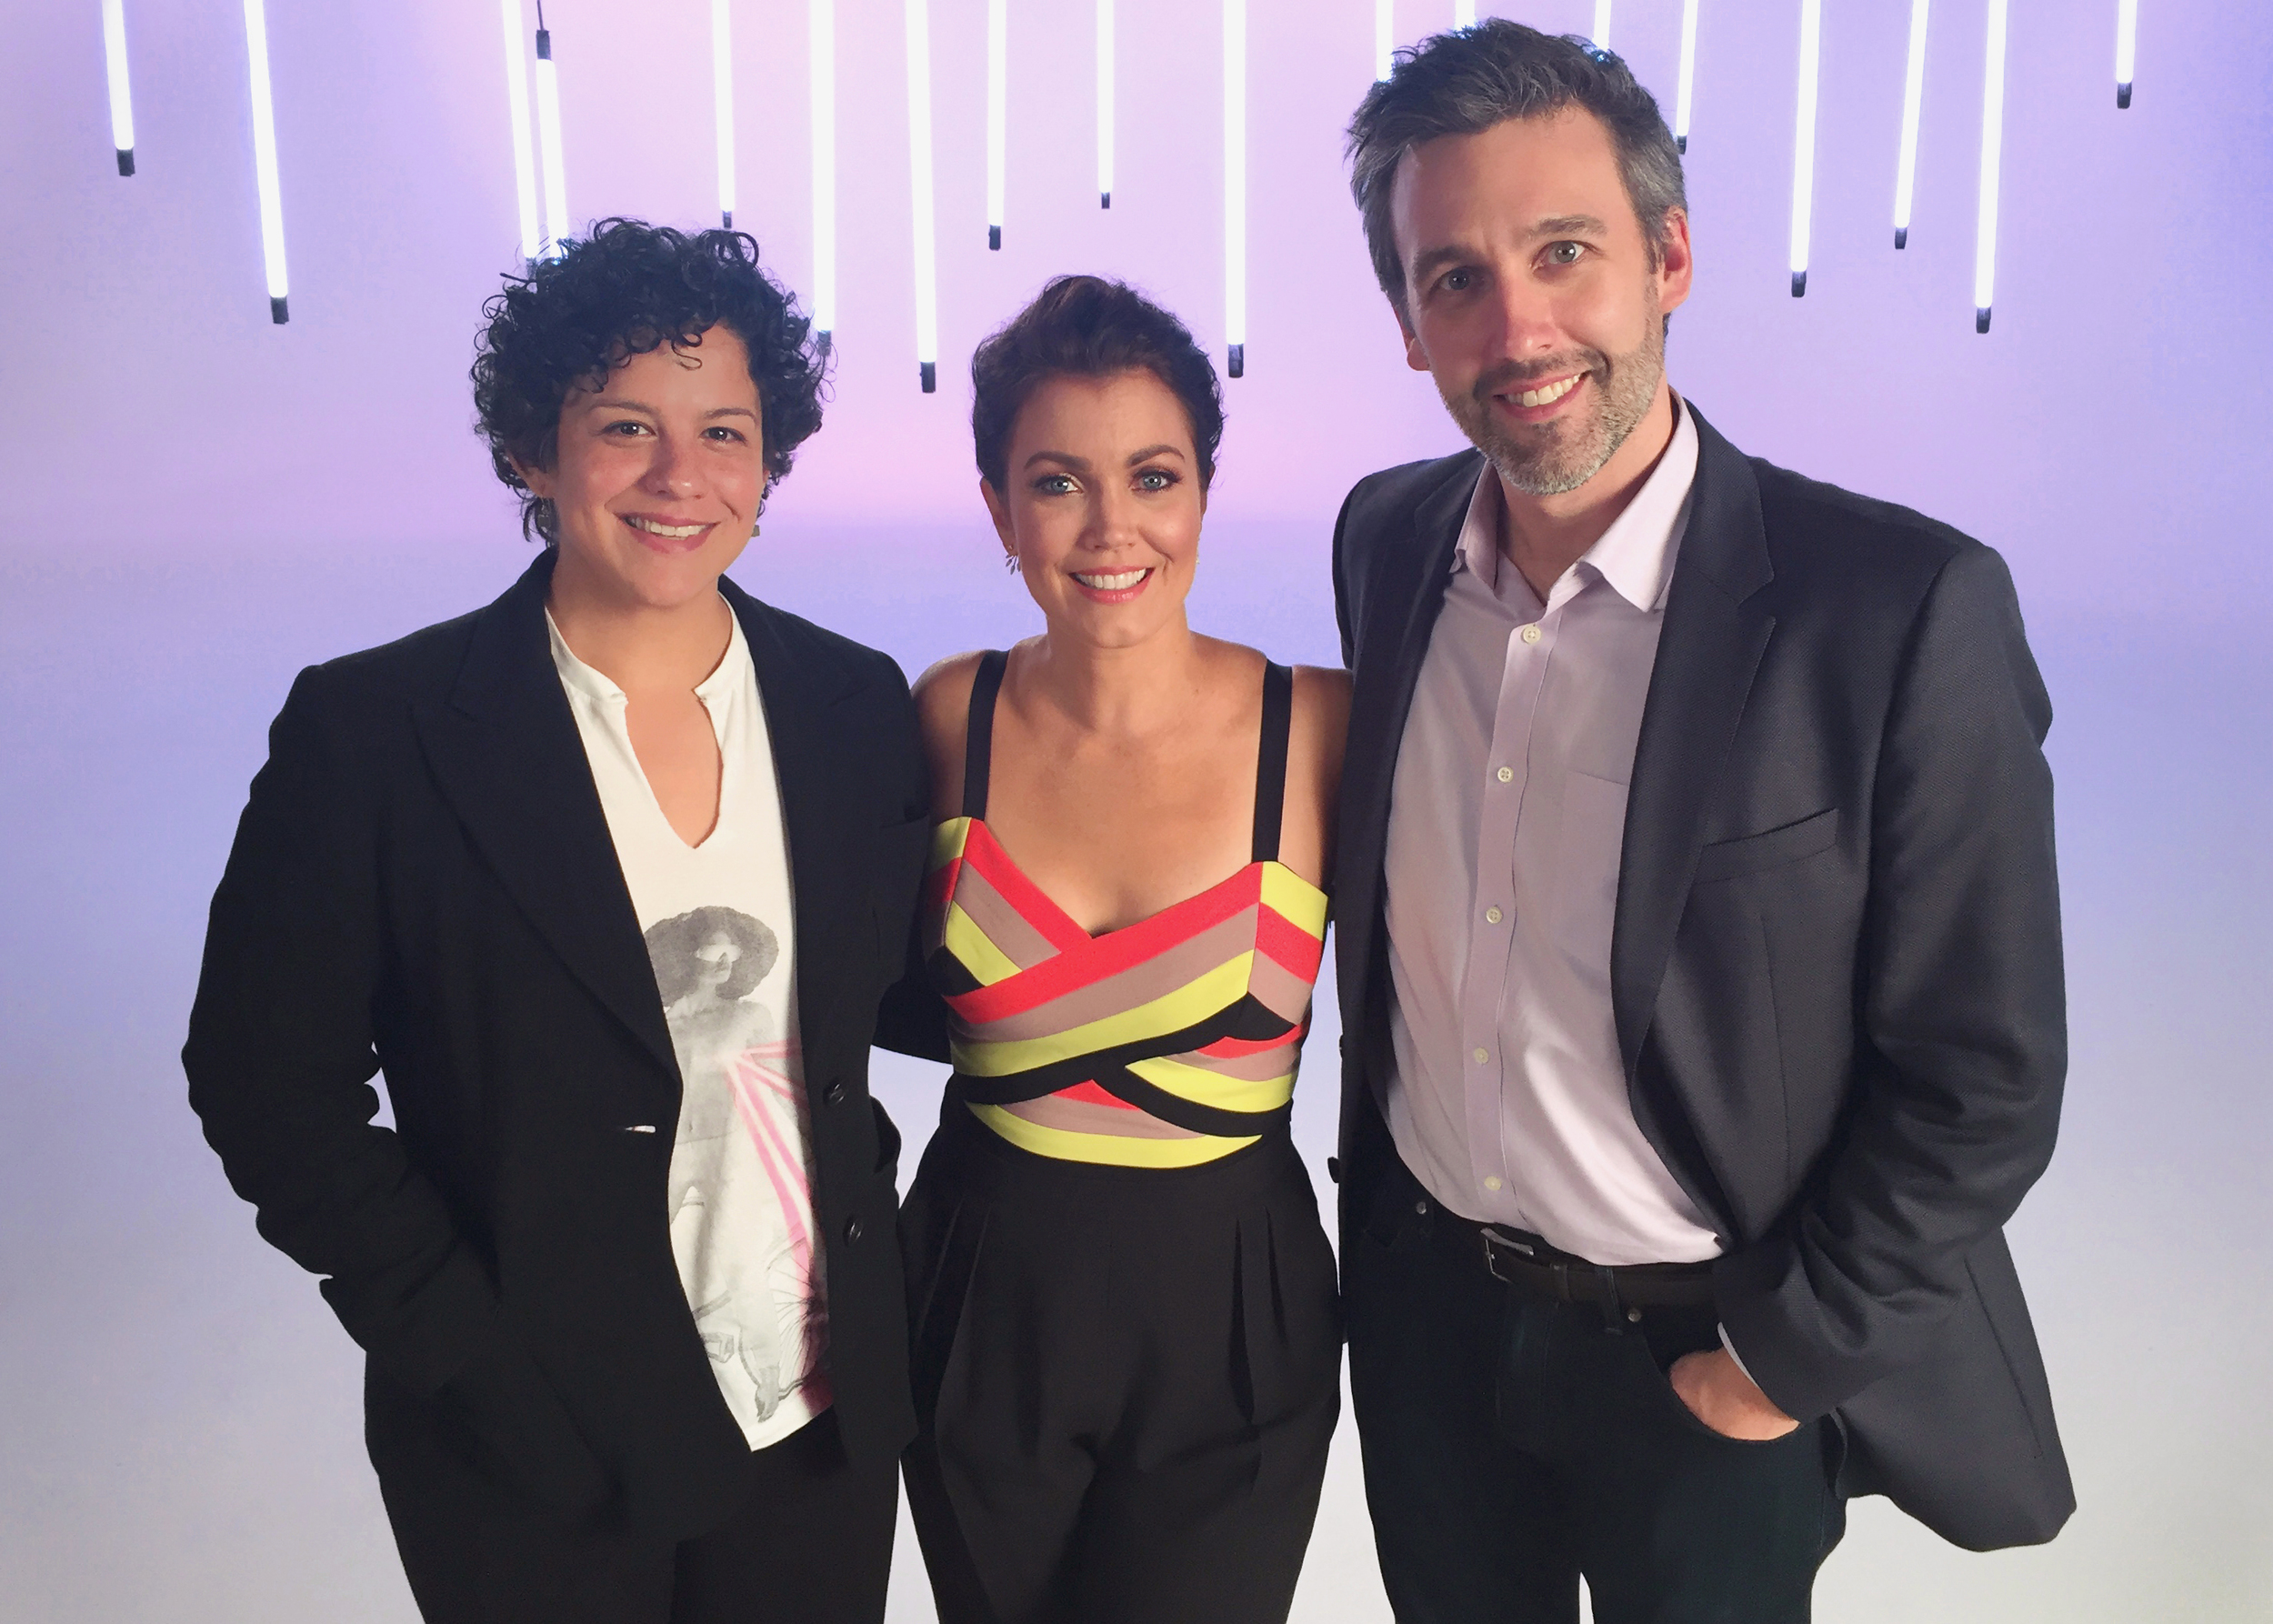 """Executive Producers Karla Hidalgo and Christopher Martin on set with  Scandal  ' s Bellamy Young for """"People's Sexiest Man Alive 2015: 30 Years of Sexy."""" The special airs November 18th, at 9/8c on  Lifetime."""